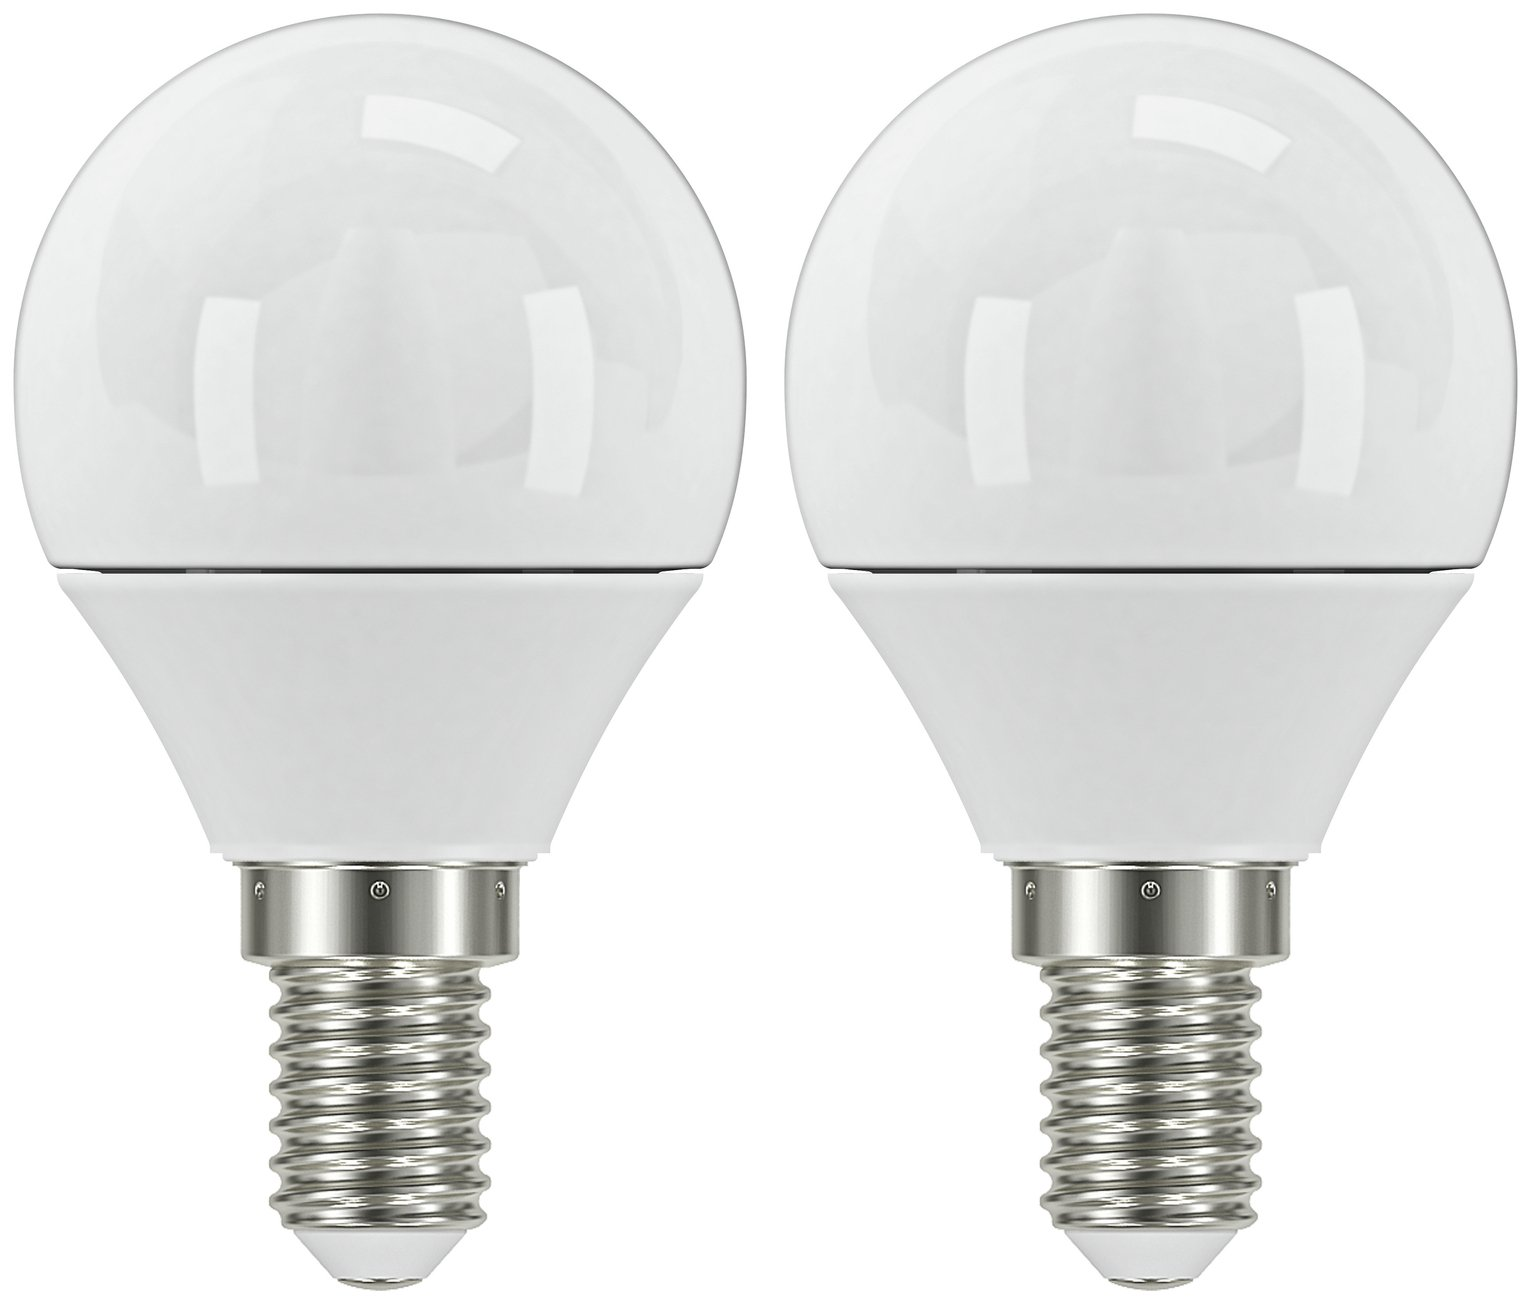 Argos Home 5W LED Mini Globe SES Light Bulb - 2 Pack